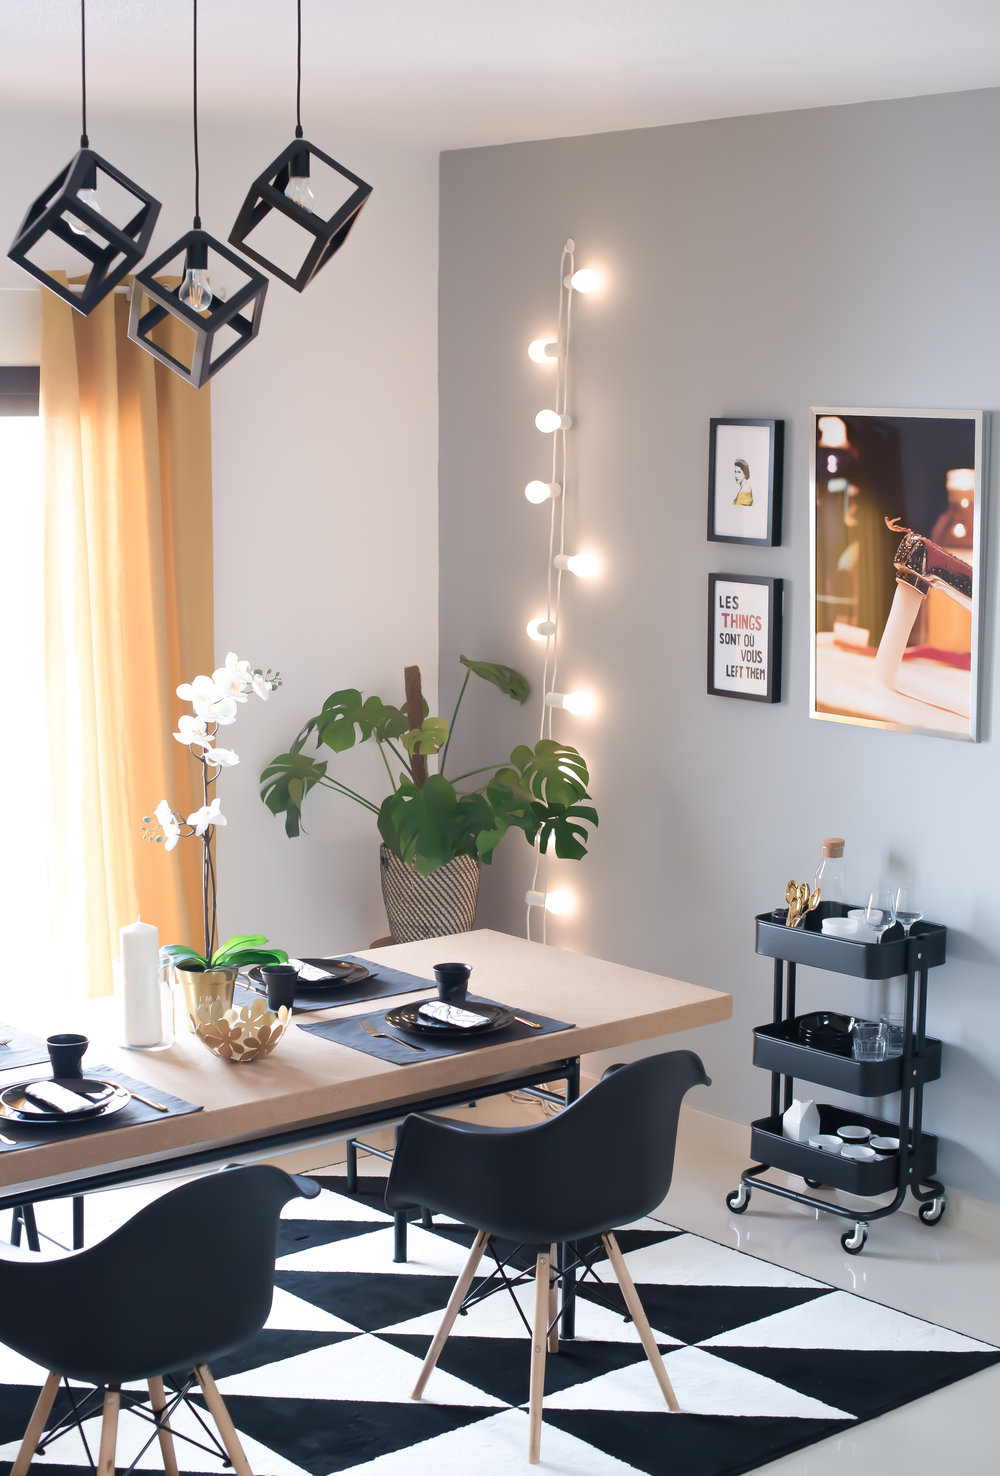 How I refreshed my dining room with IKEA on a AED500 budget